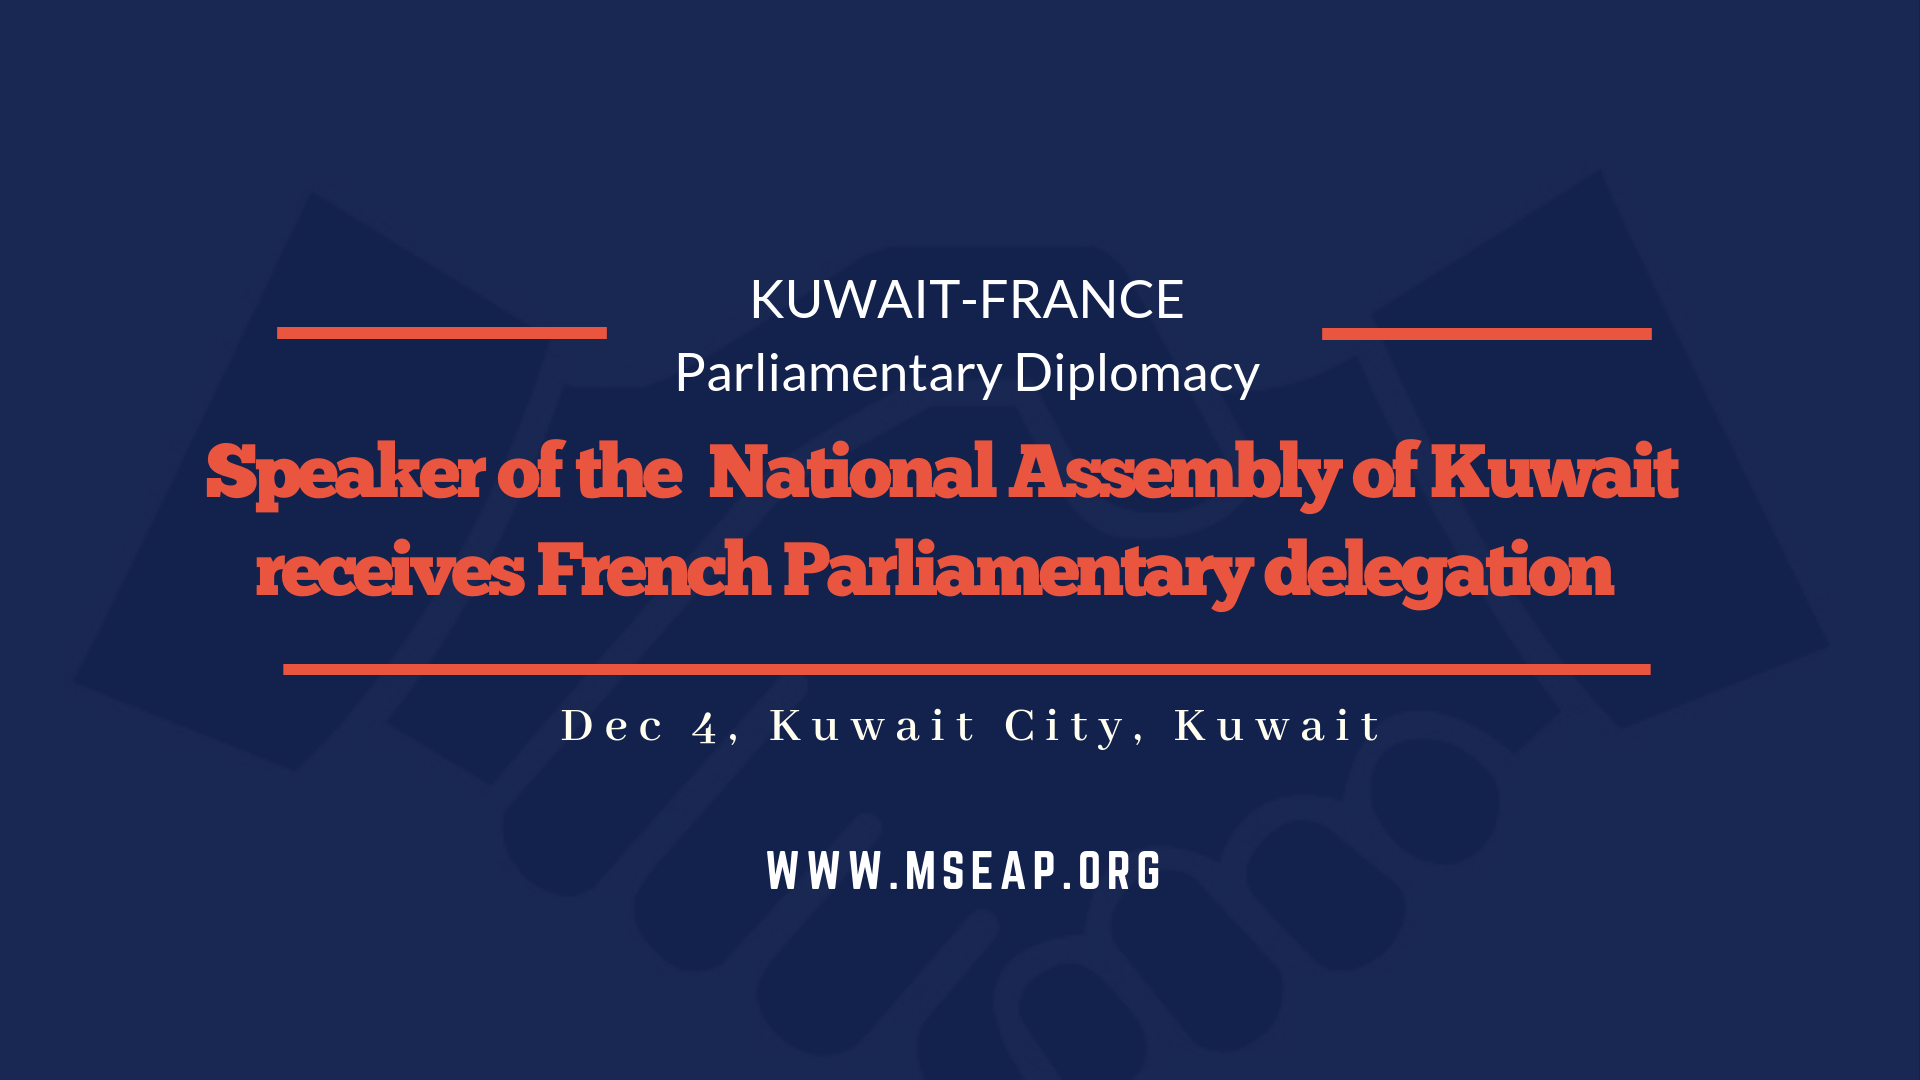 Kuwaiti National Assembly Speaker receives French parliamentary delegation in Kuwait City